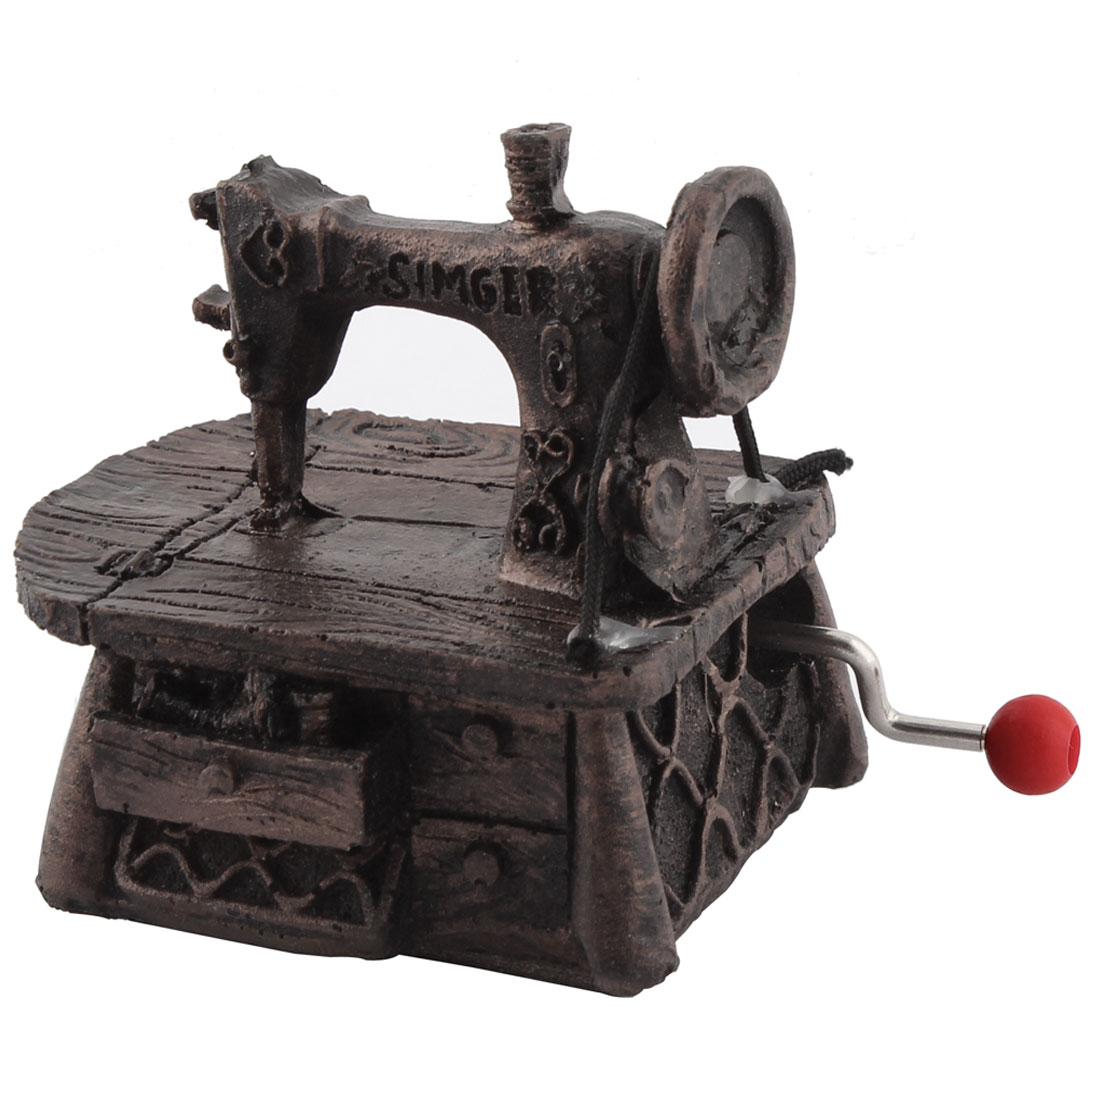 Desktop Decoration Sewing Machine Shaped Hand-cranked Music Box Birthday Gift Brown